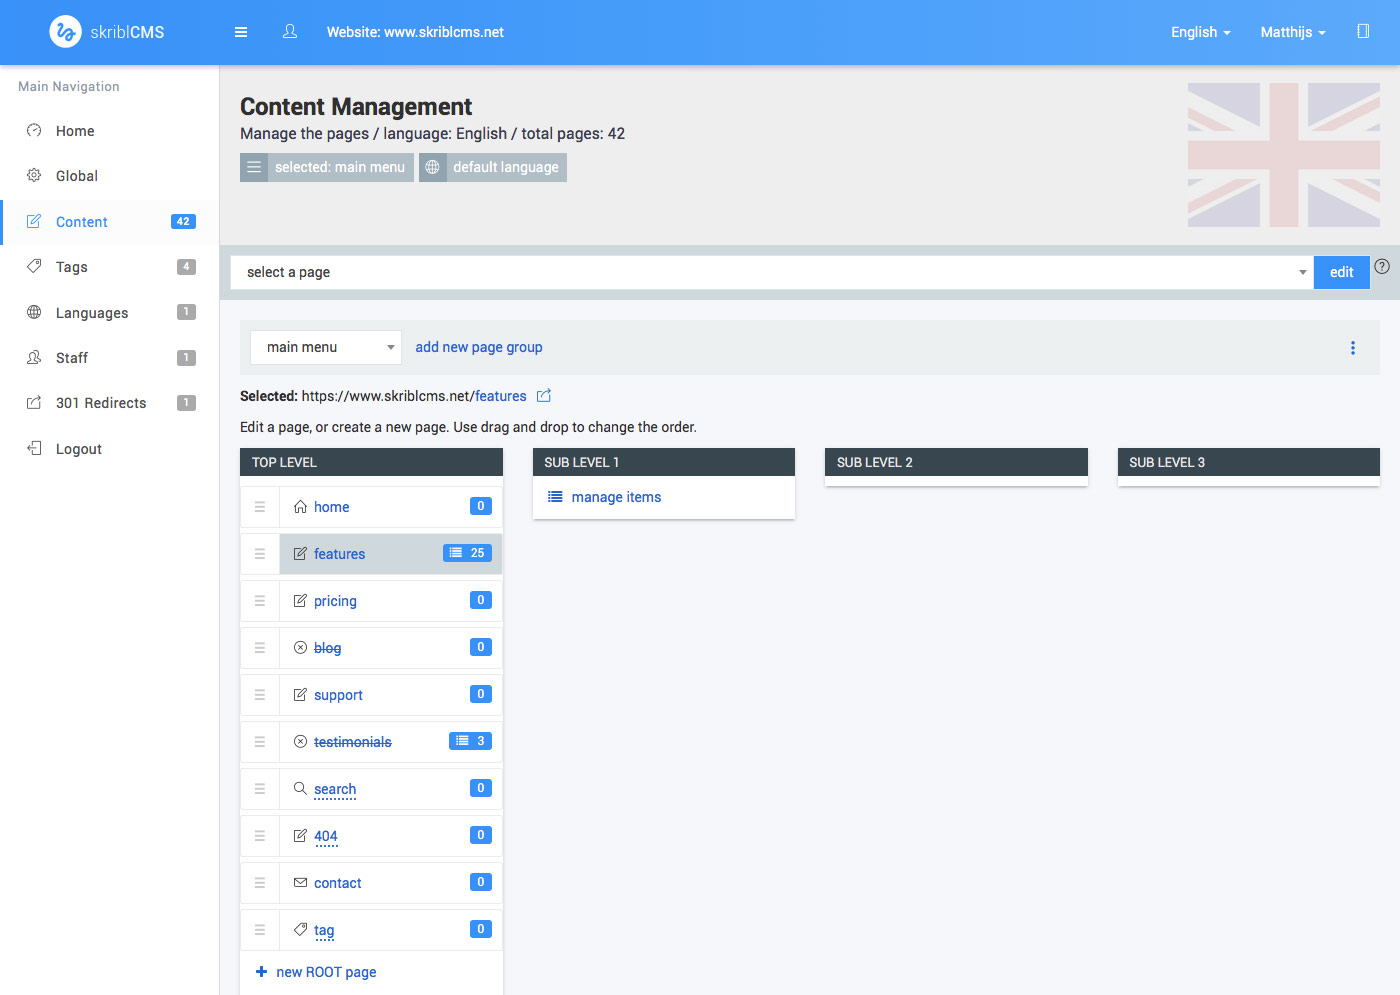 skriblCMS - content management - the features page is a list page where sub pages are presented in their own list.